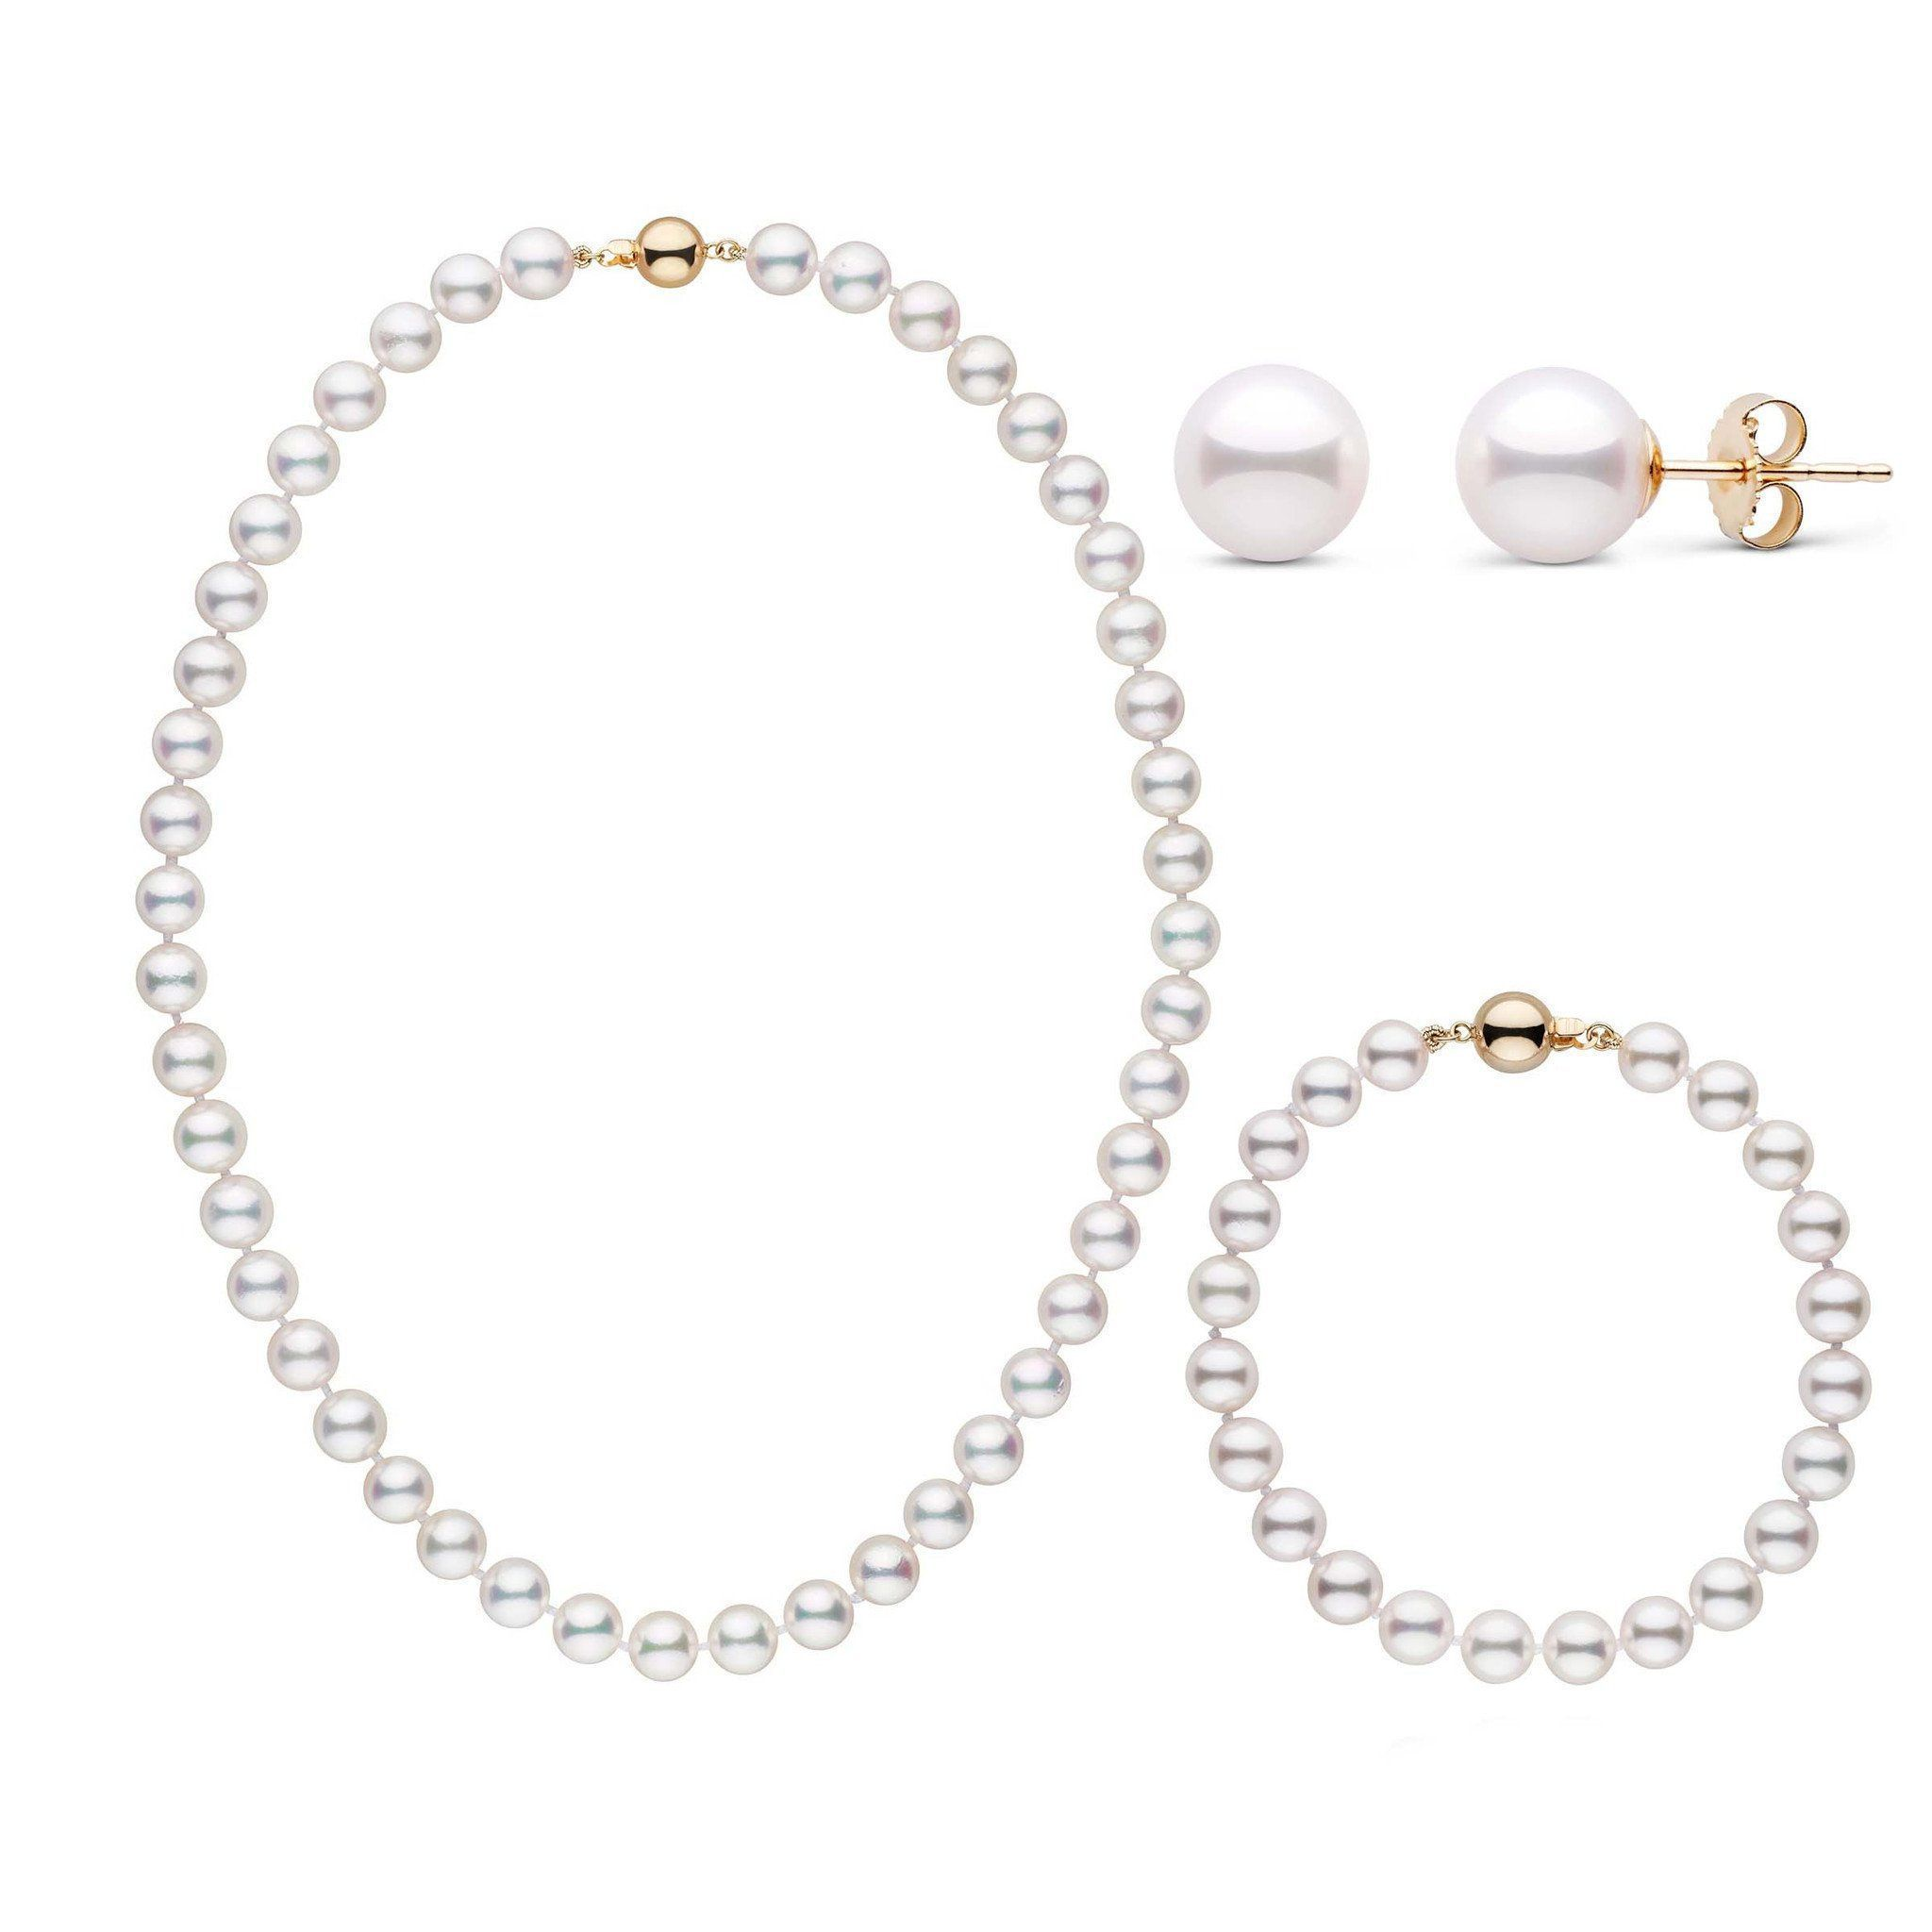 16 Inch 3 Piece Set of 7.0-7.5 mm AAA White Akoya Pearls